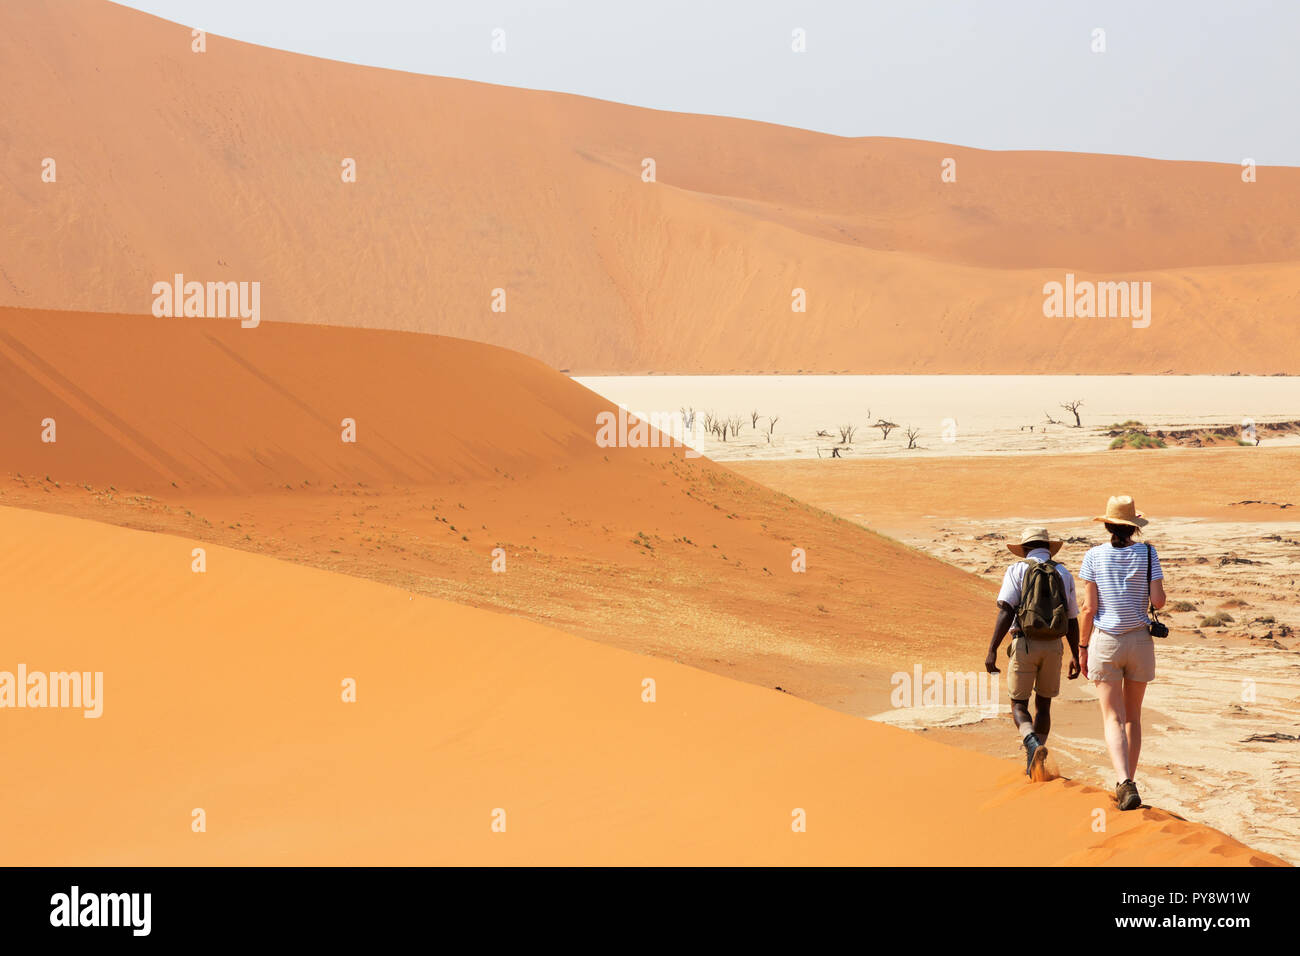 Namibia tourist - a tourtist being led by her tour guide through the sand dunes in Sossusvlei, Namib Desert, Namibia Africa - Stock Image